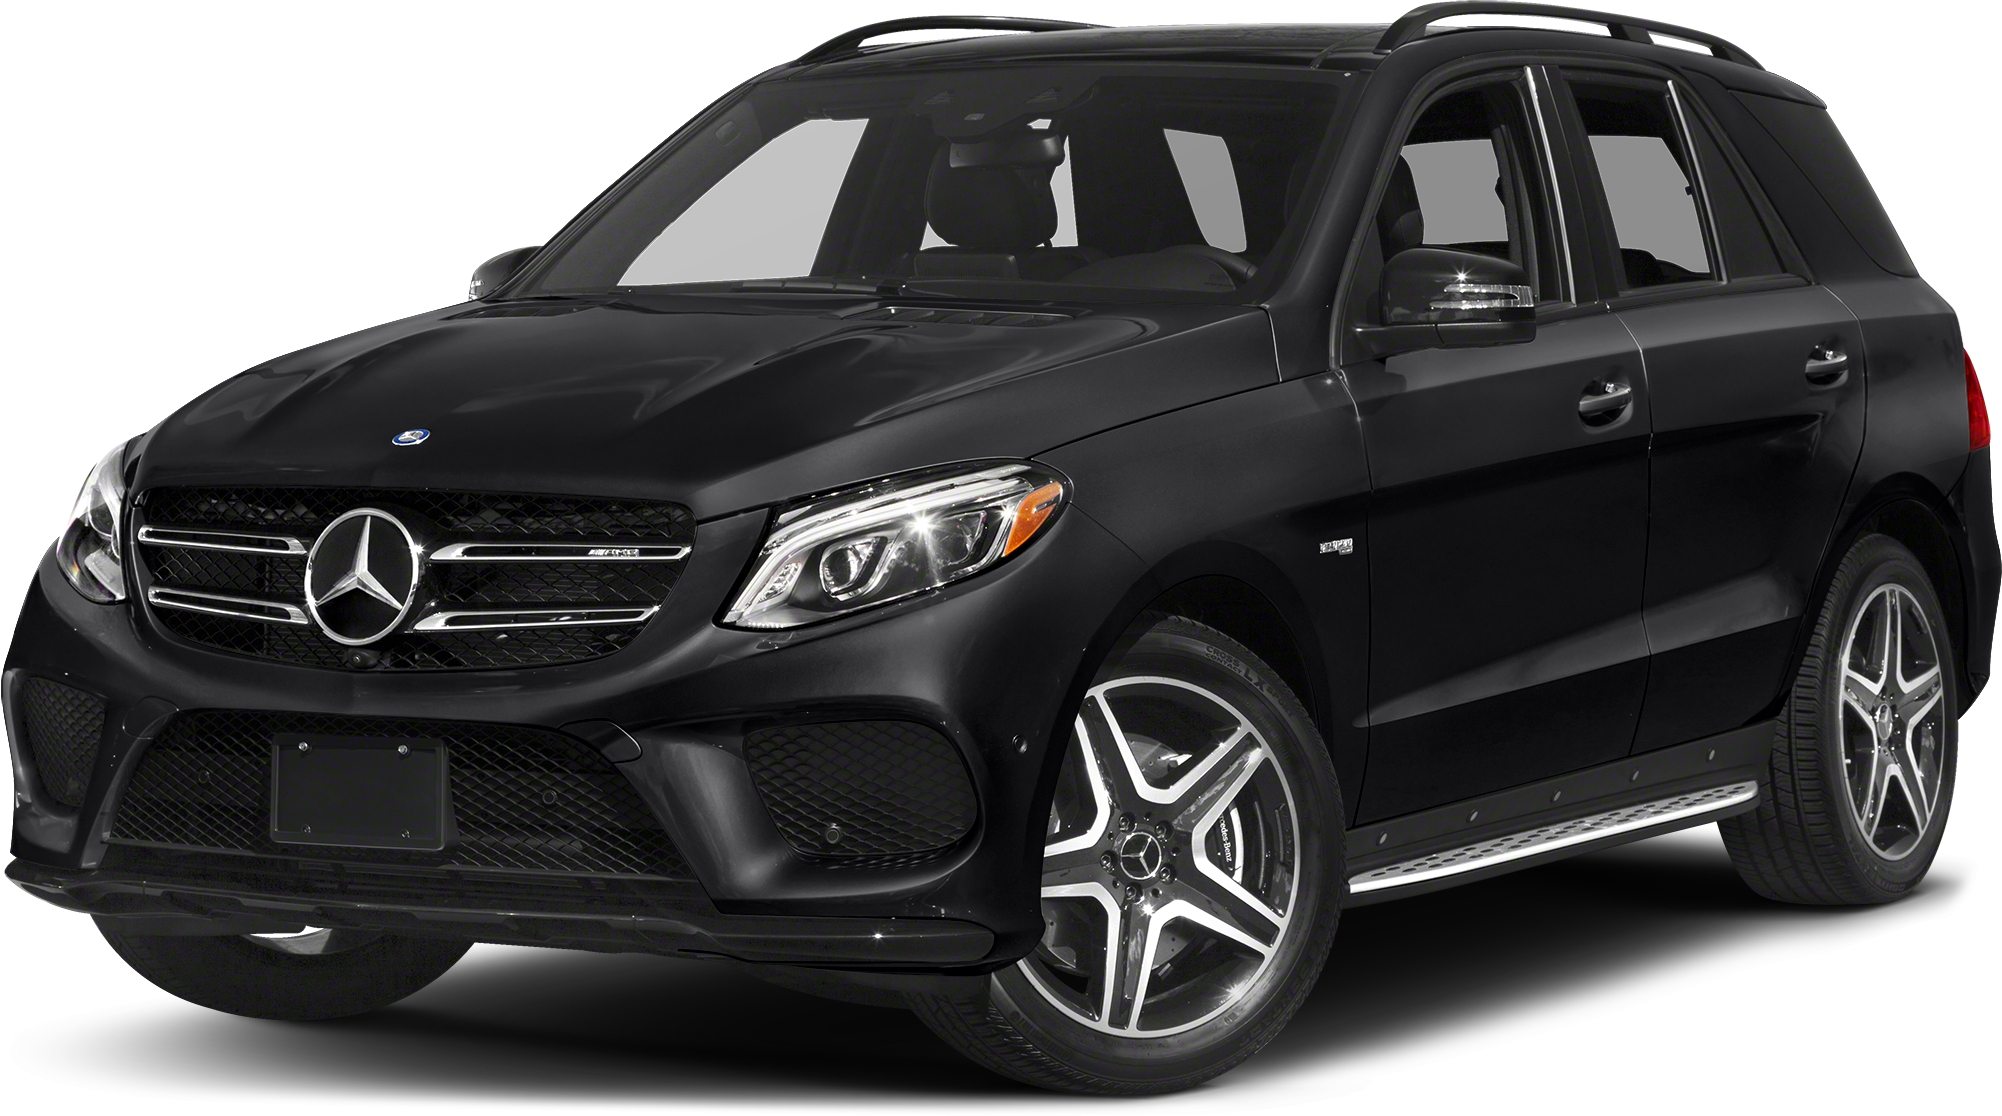 2017 mercedes benz gle 43 amg suv 18082573 for sale price purchase lease near me. Black Bedroom Furniture Sets. Home Design Ideas